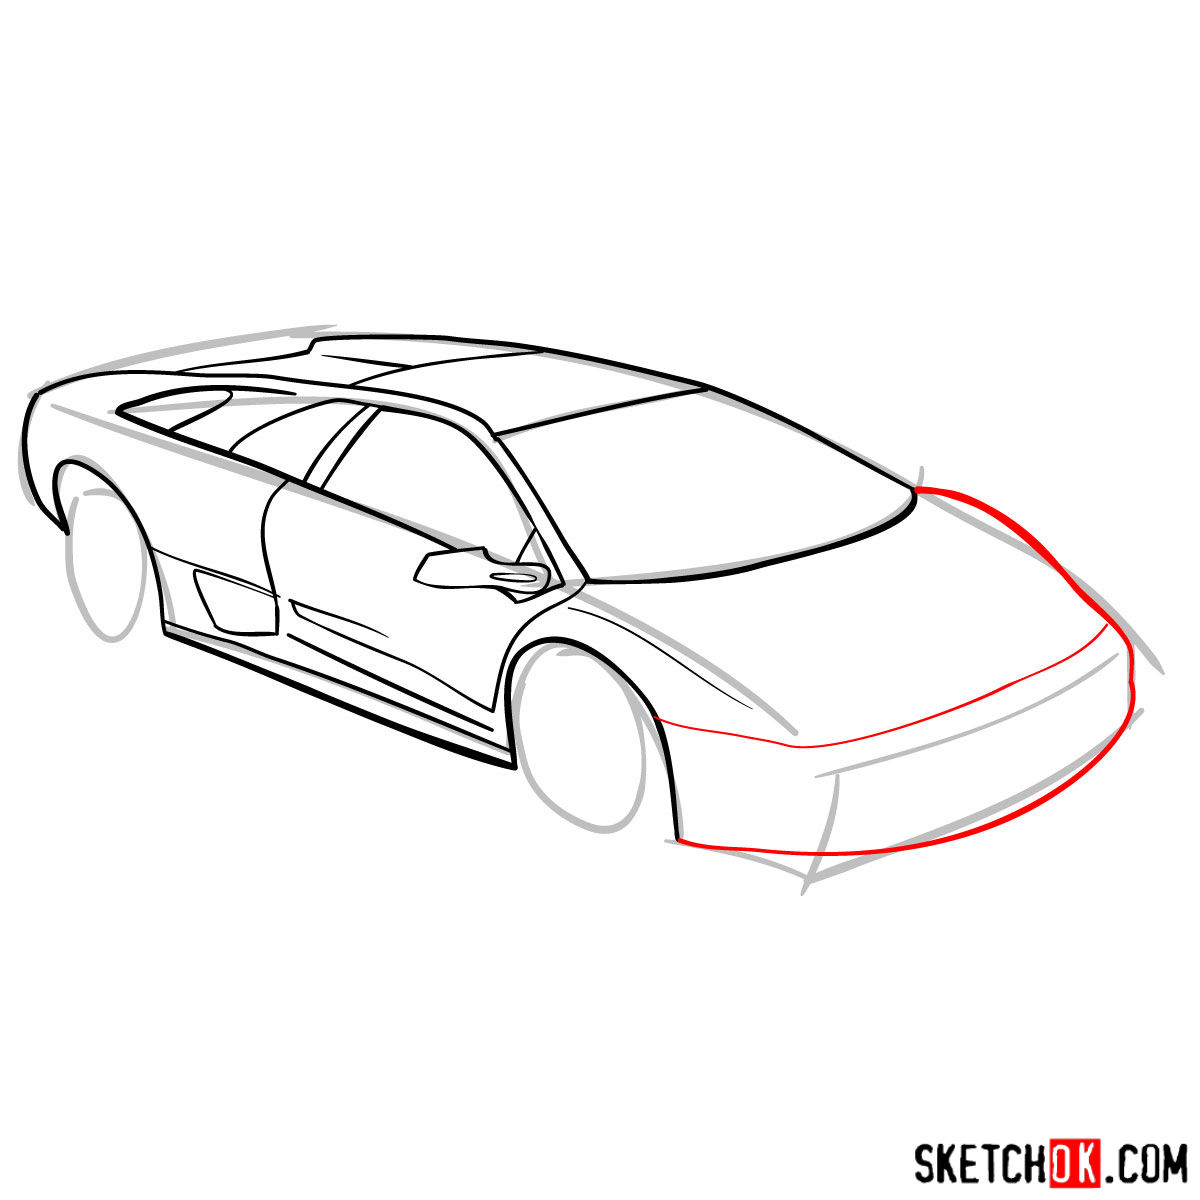 How to draw Lamborghini Diablo - step 07